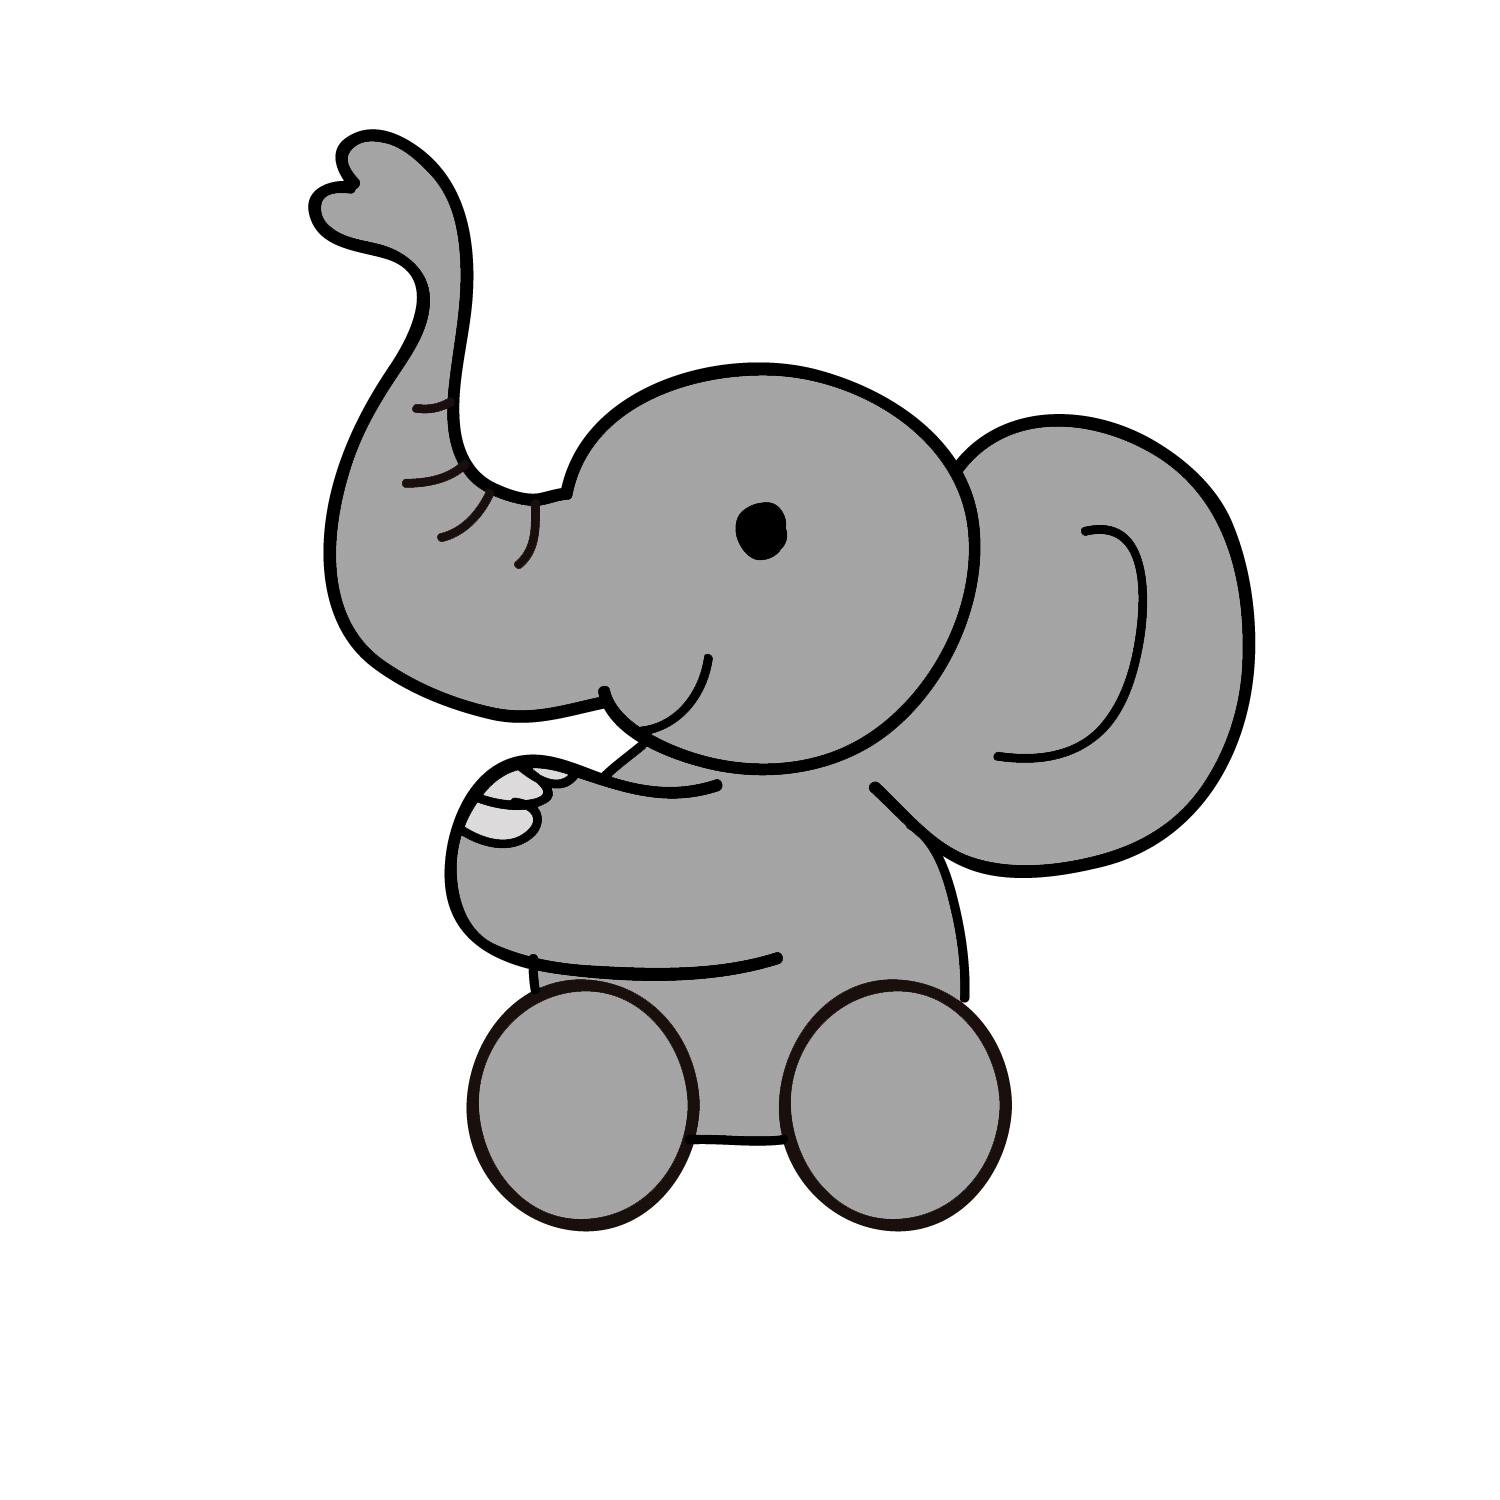 Elephant Cartoon Image - ClipArt Best - Cliparts.co